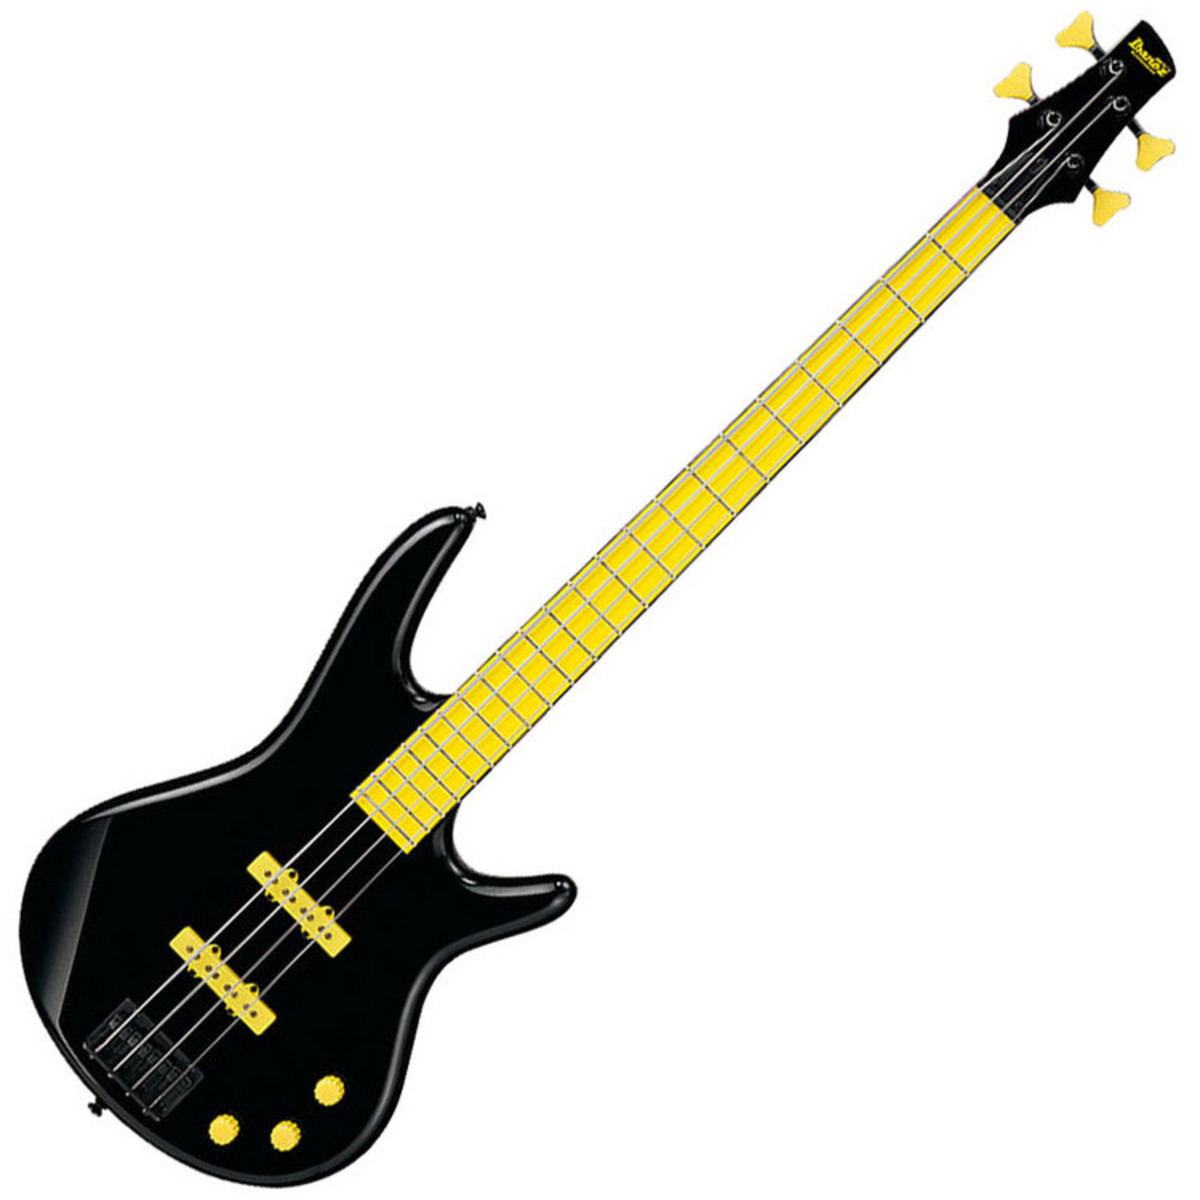 Ibanez GSR010LTD Bass Guitar, Limited Edition, Black at Gear4music.com